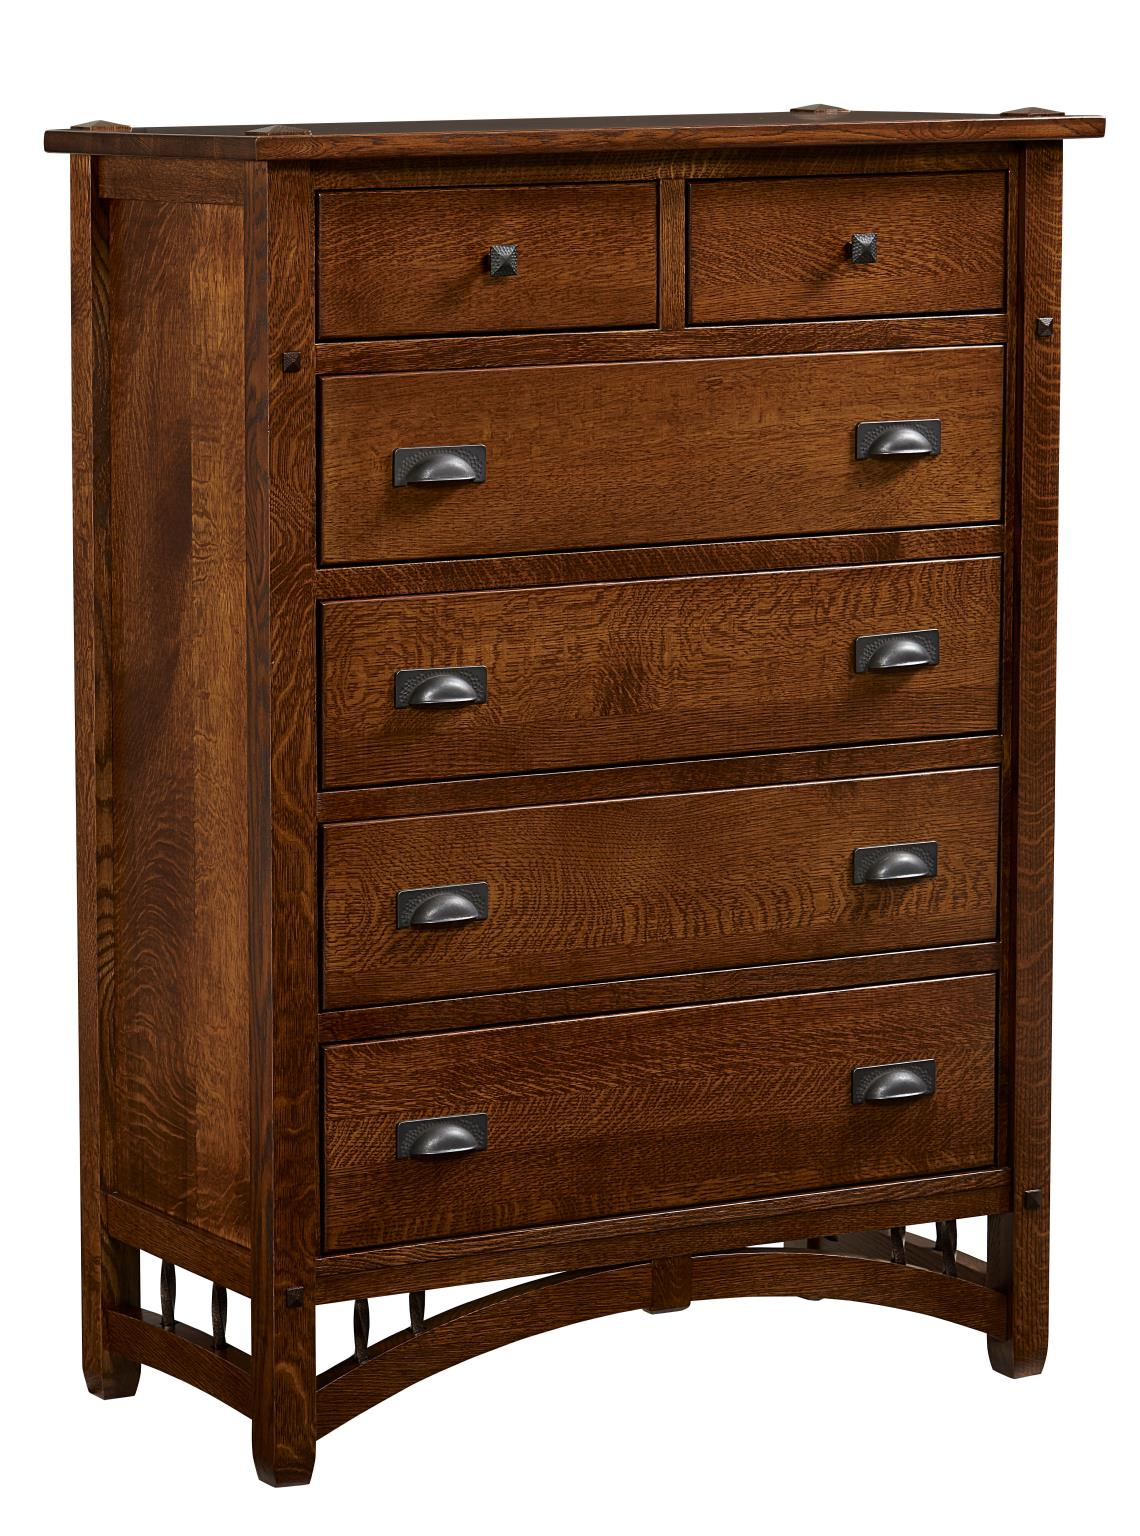 Amish Arroyo Seco Chest of Drawers Image